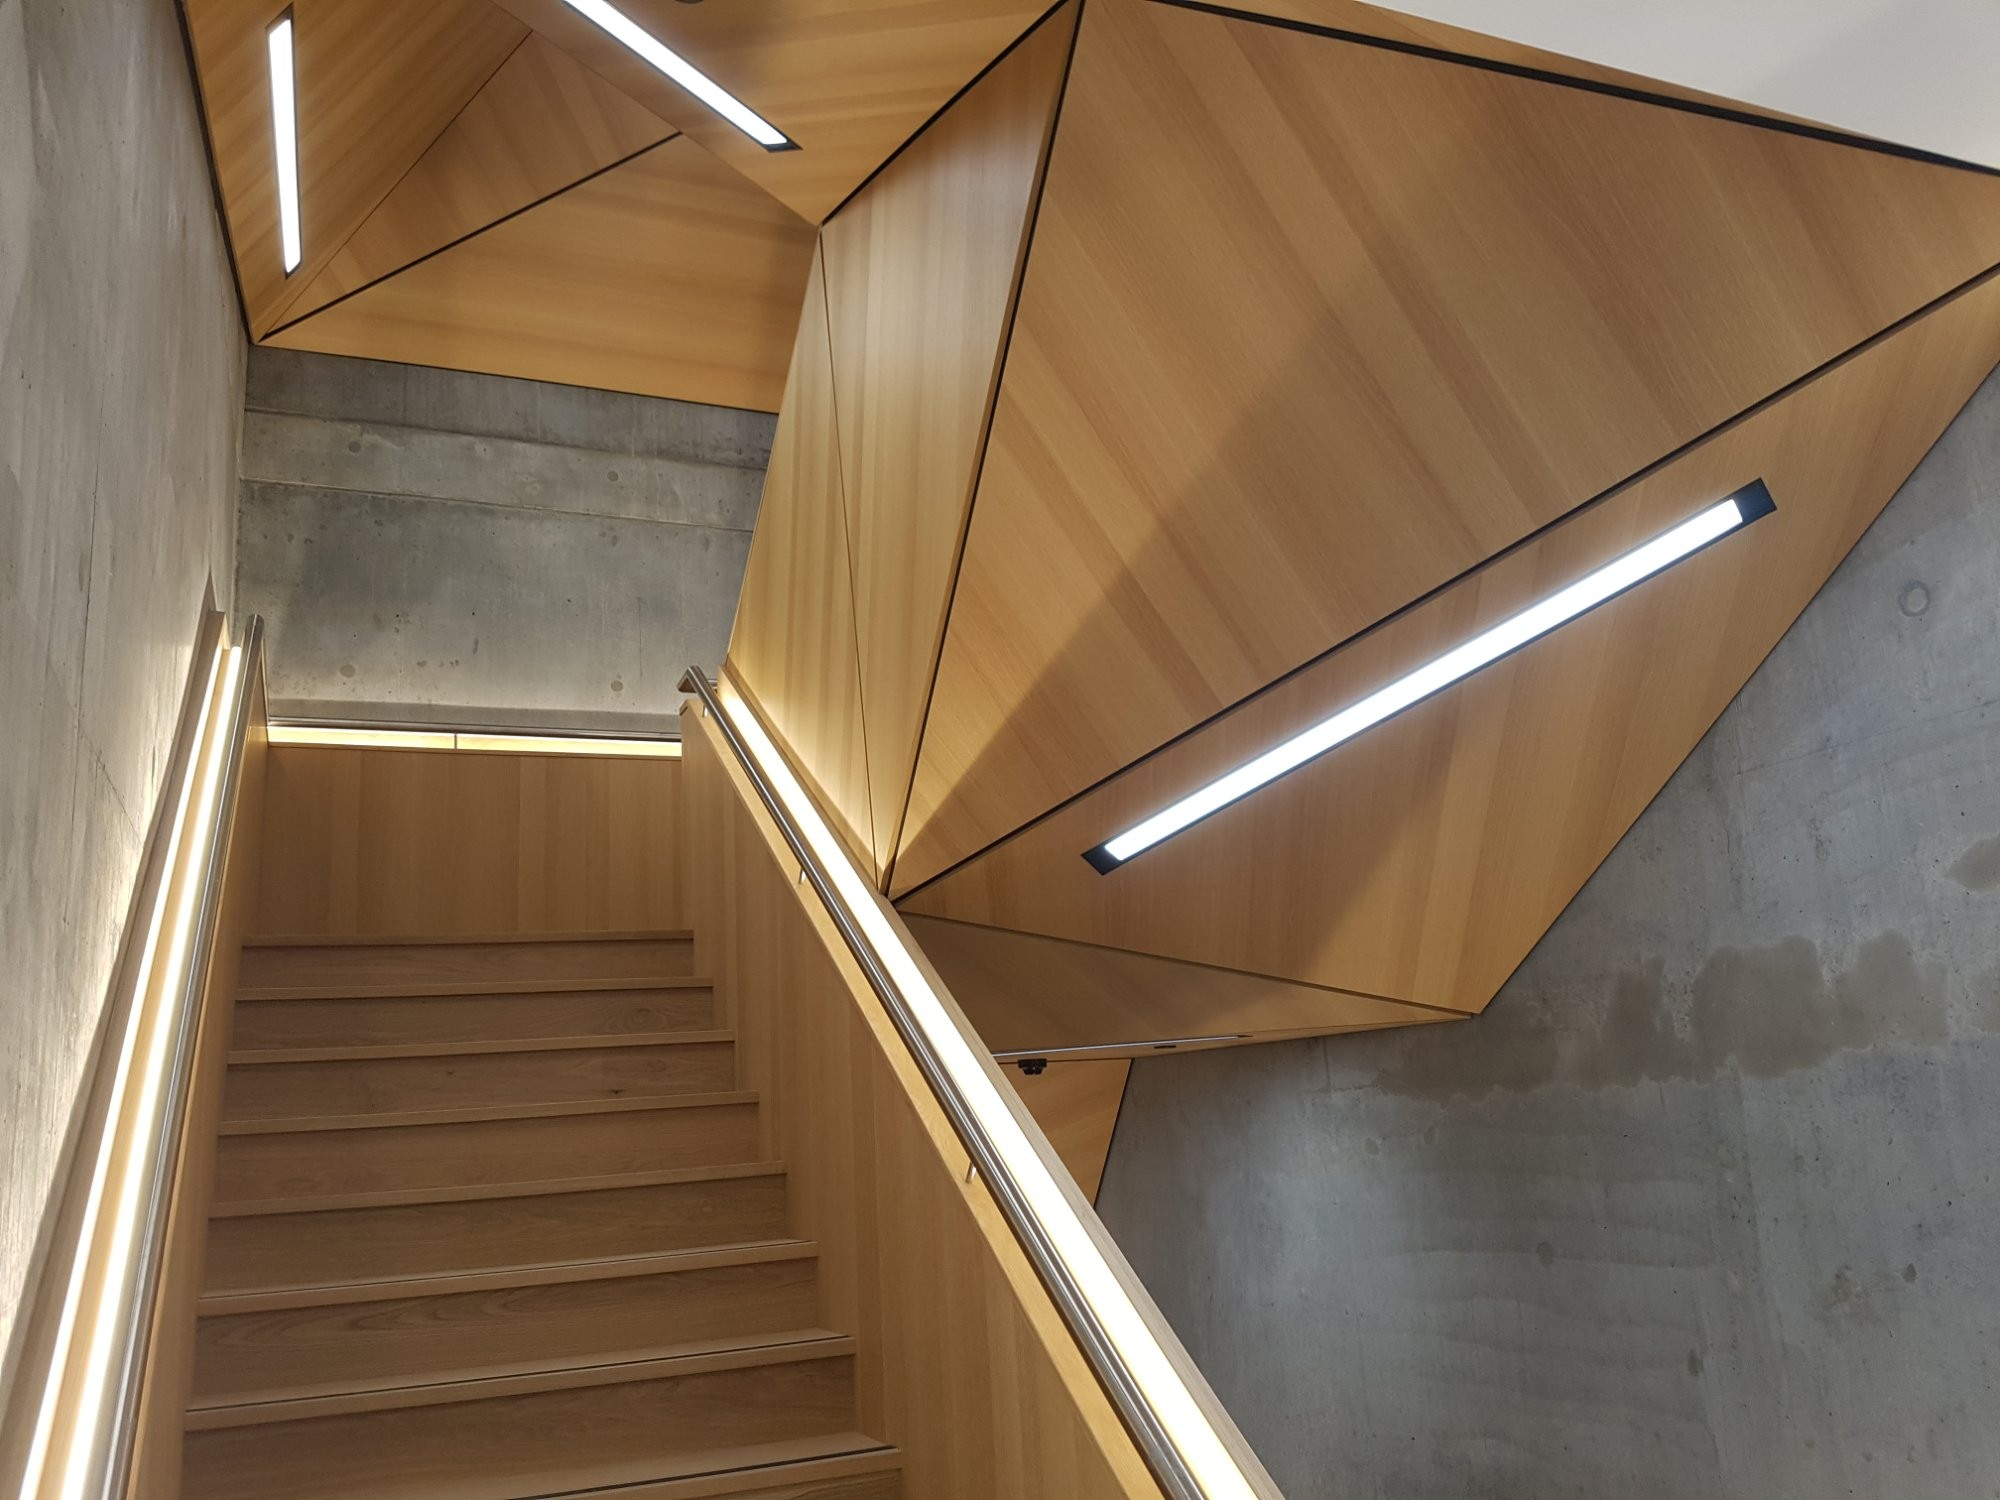 Timber Veneer Perth Curtin University Building 304 Centre For Crop And Disease Management